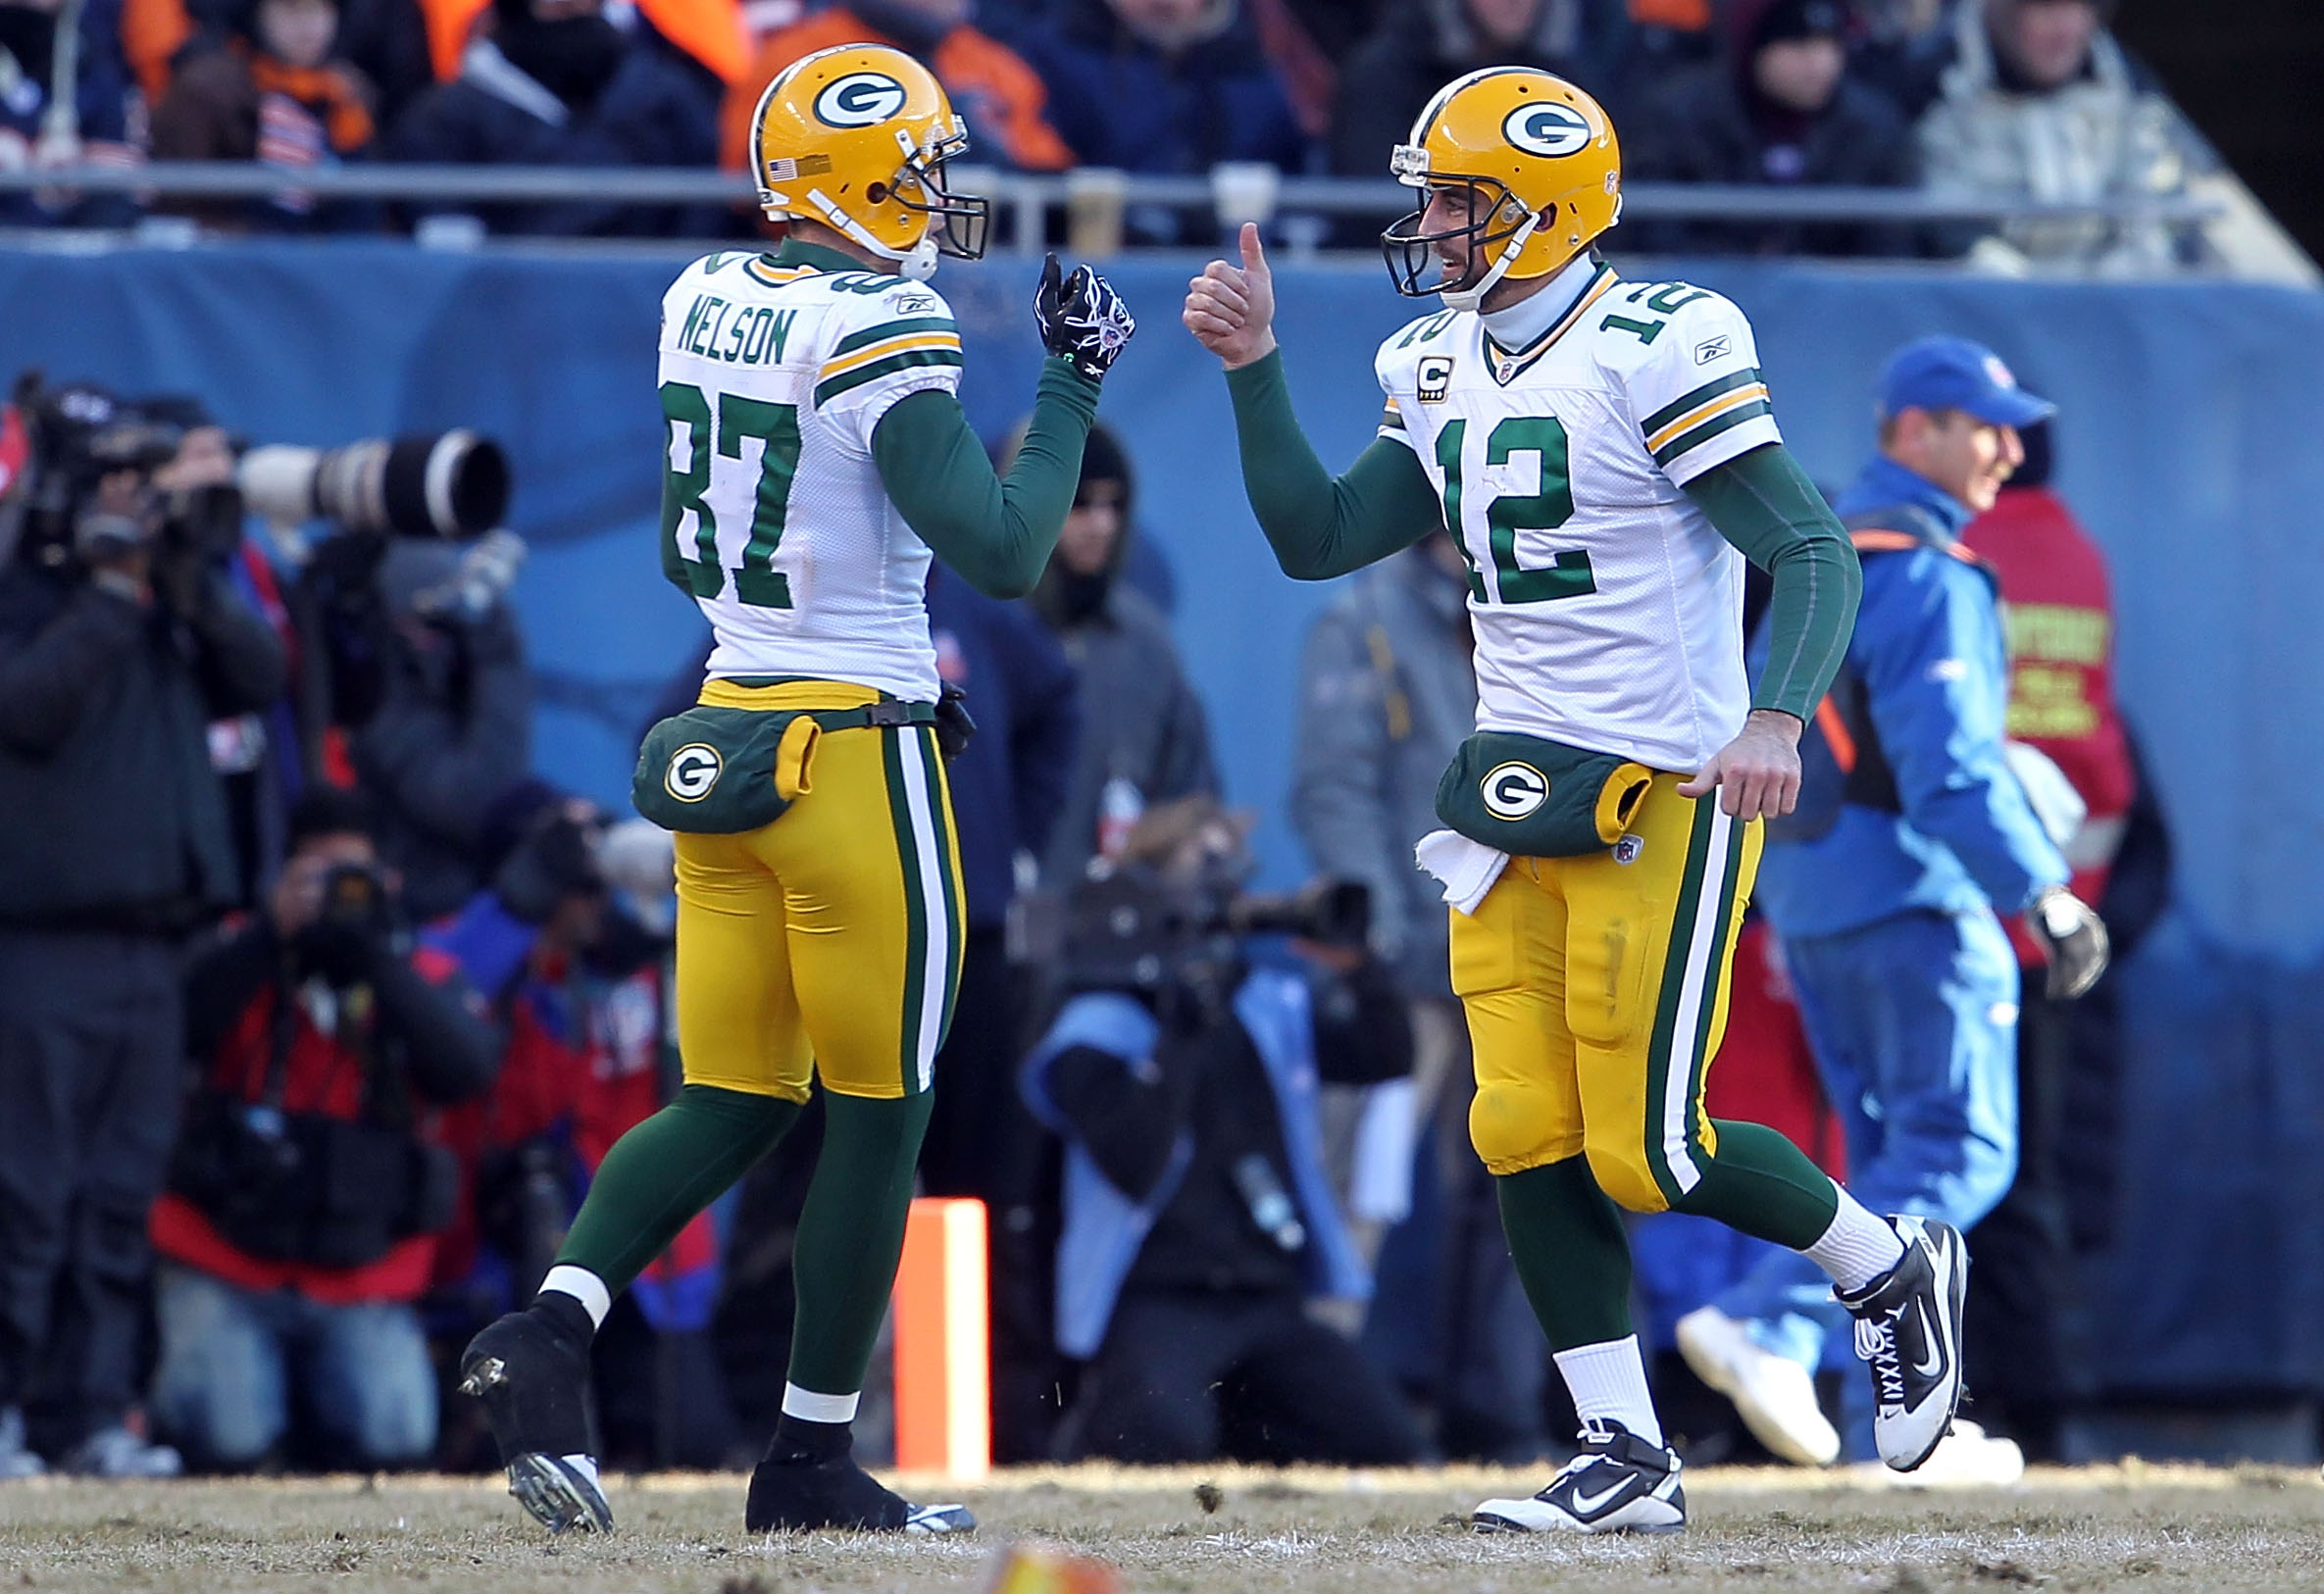 CHICAGO, IL - JANUARY 23:  Wide receiver Jordy Nelson #87 and Aaron Rodgers #12 of the Green Bay Packers react after running back James Starks #44 of the Packers scores on a four-yard touchdown in the second quarter against the Chicago Bears in the NFC Ch